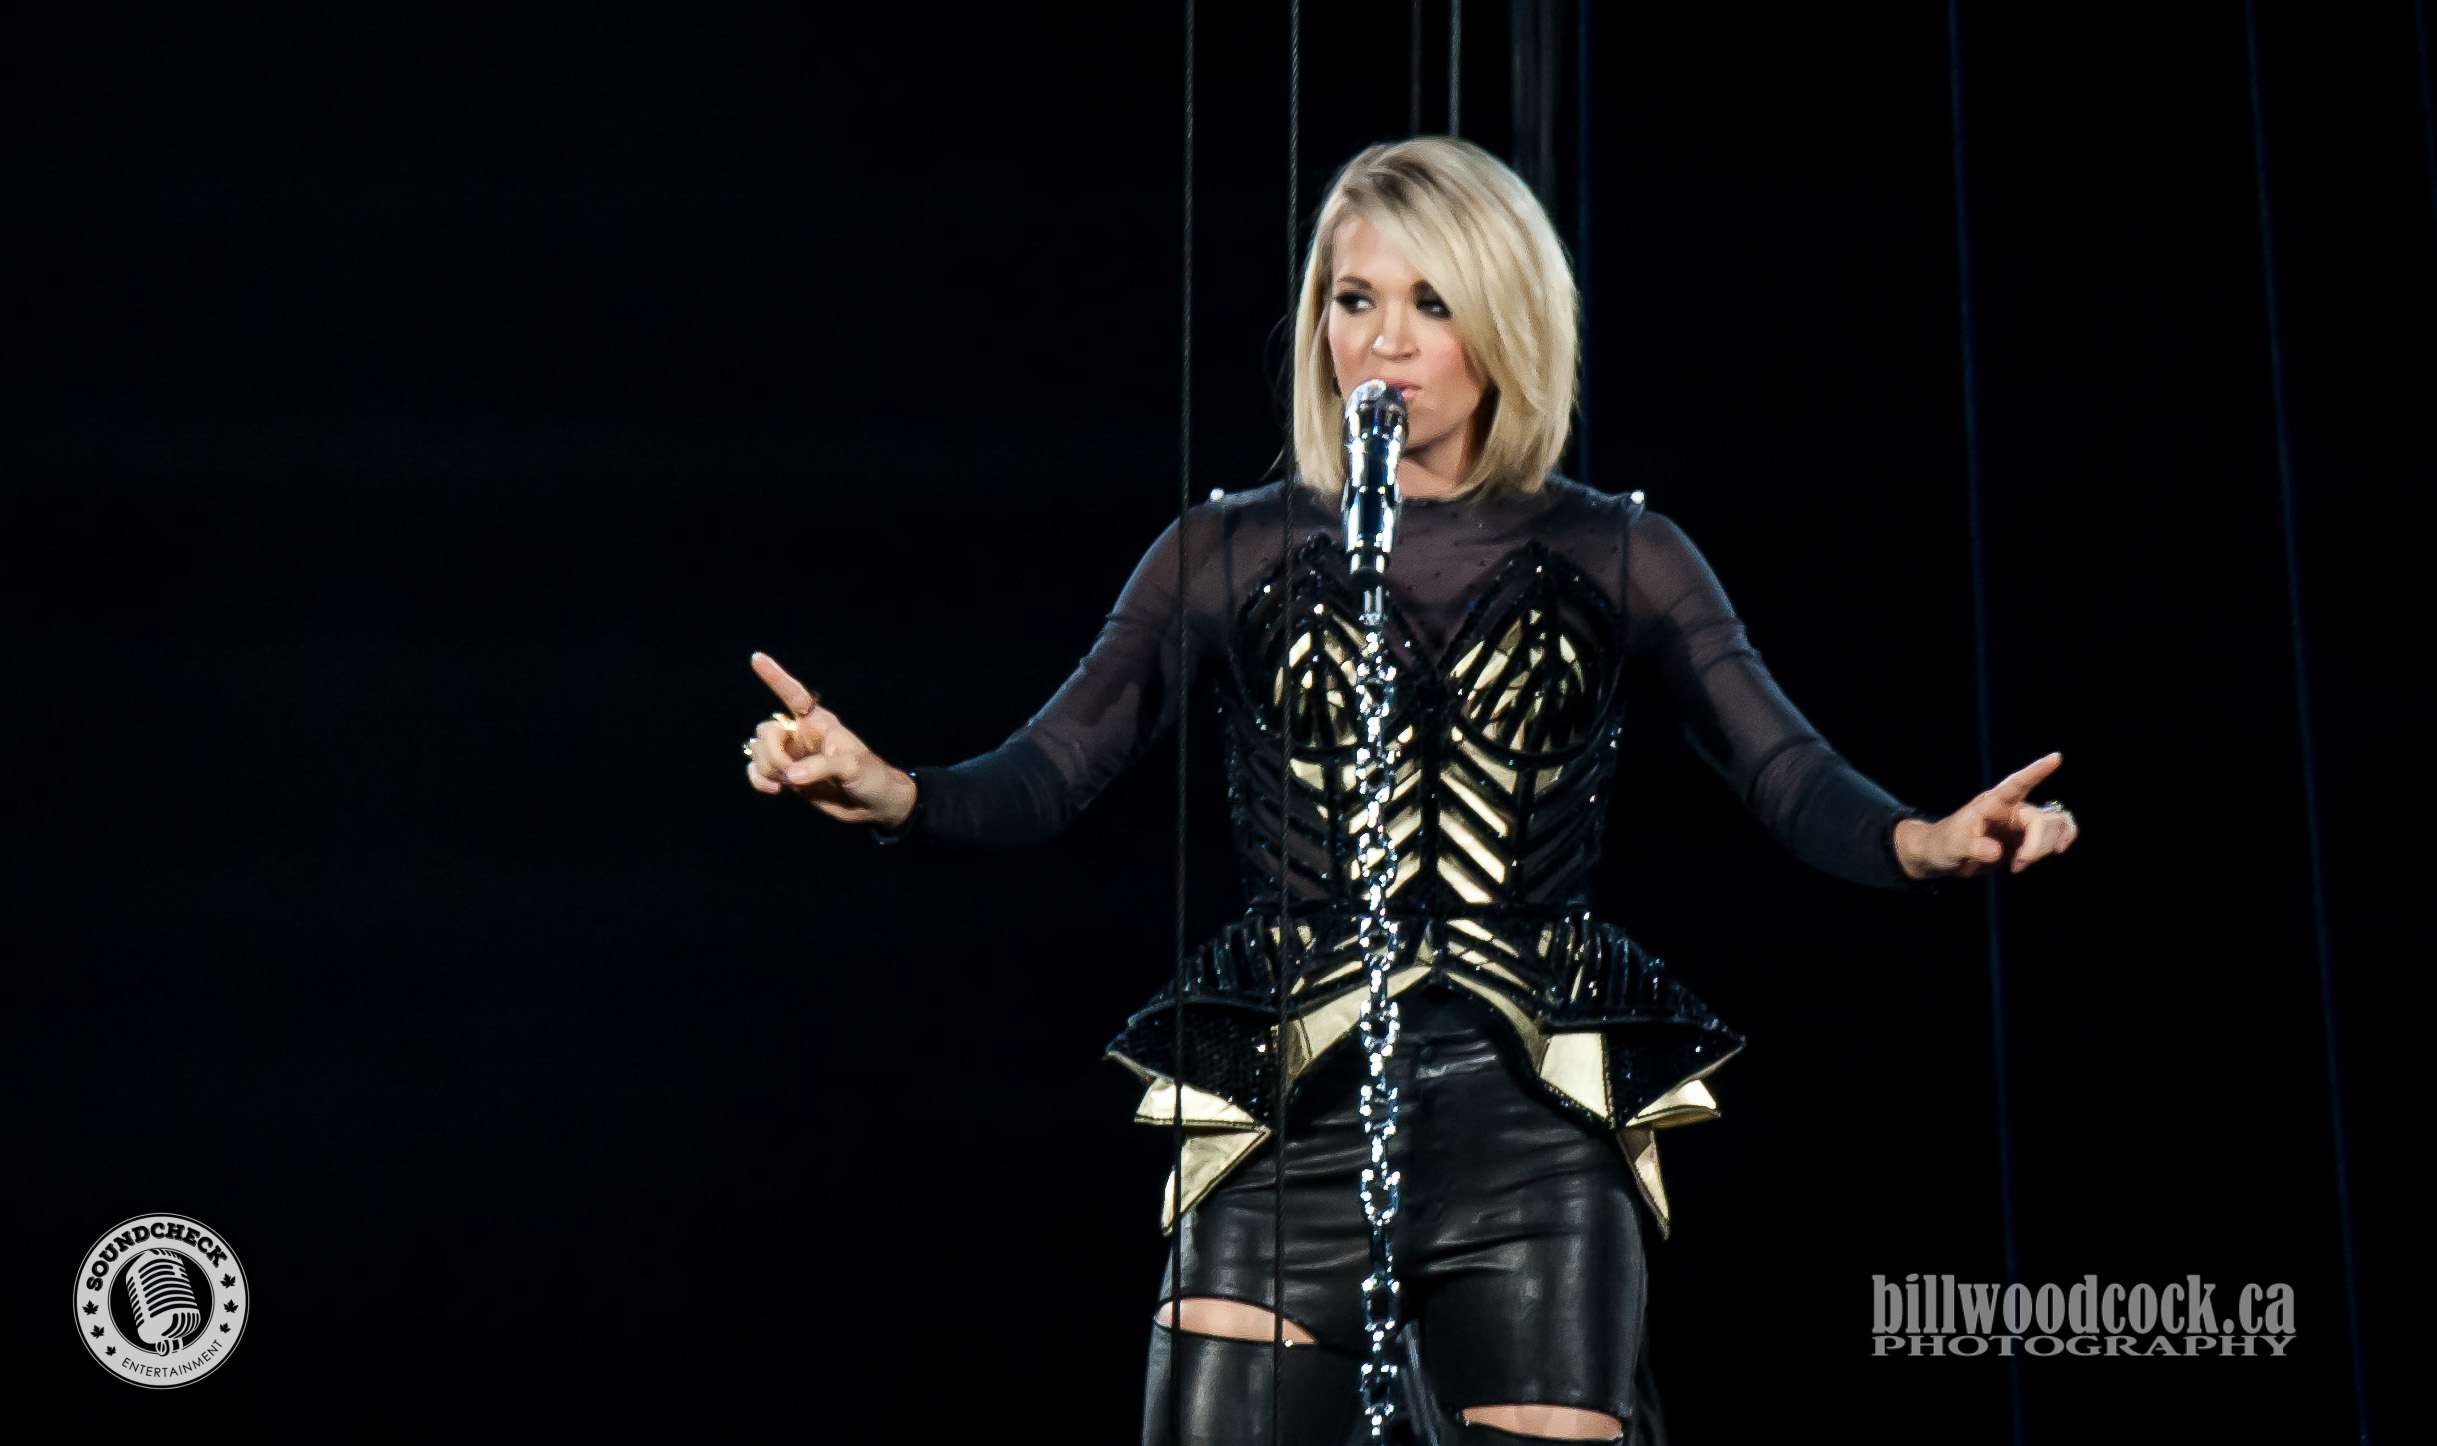 carrie underwood tour - HD2437×1446